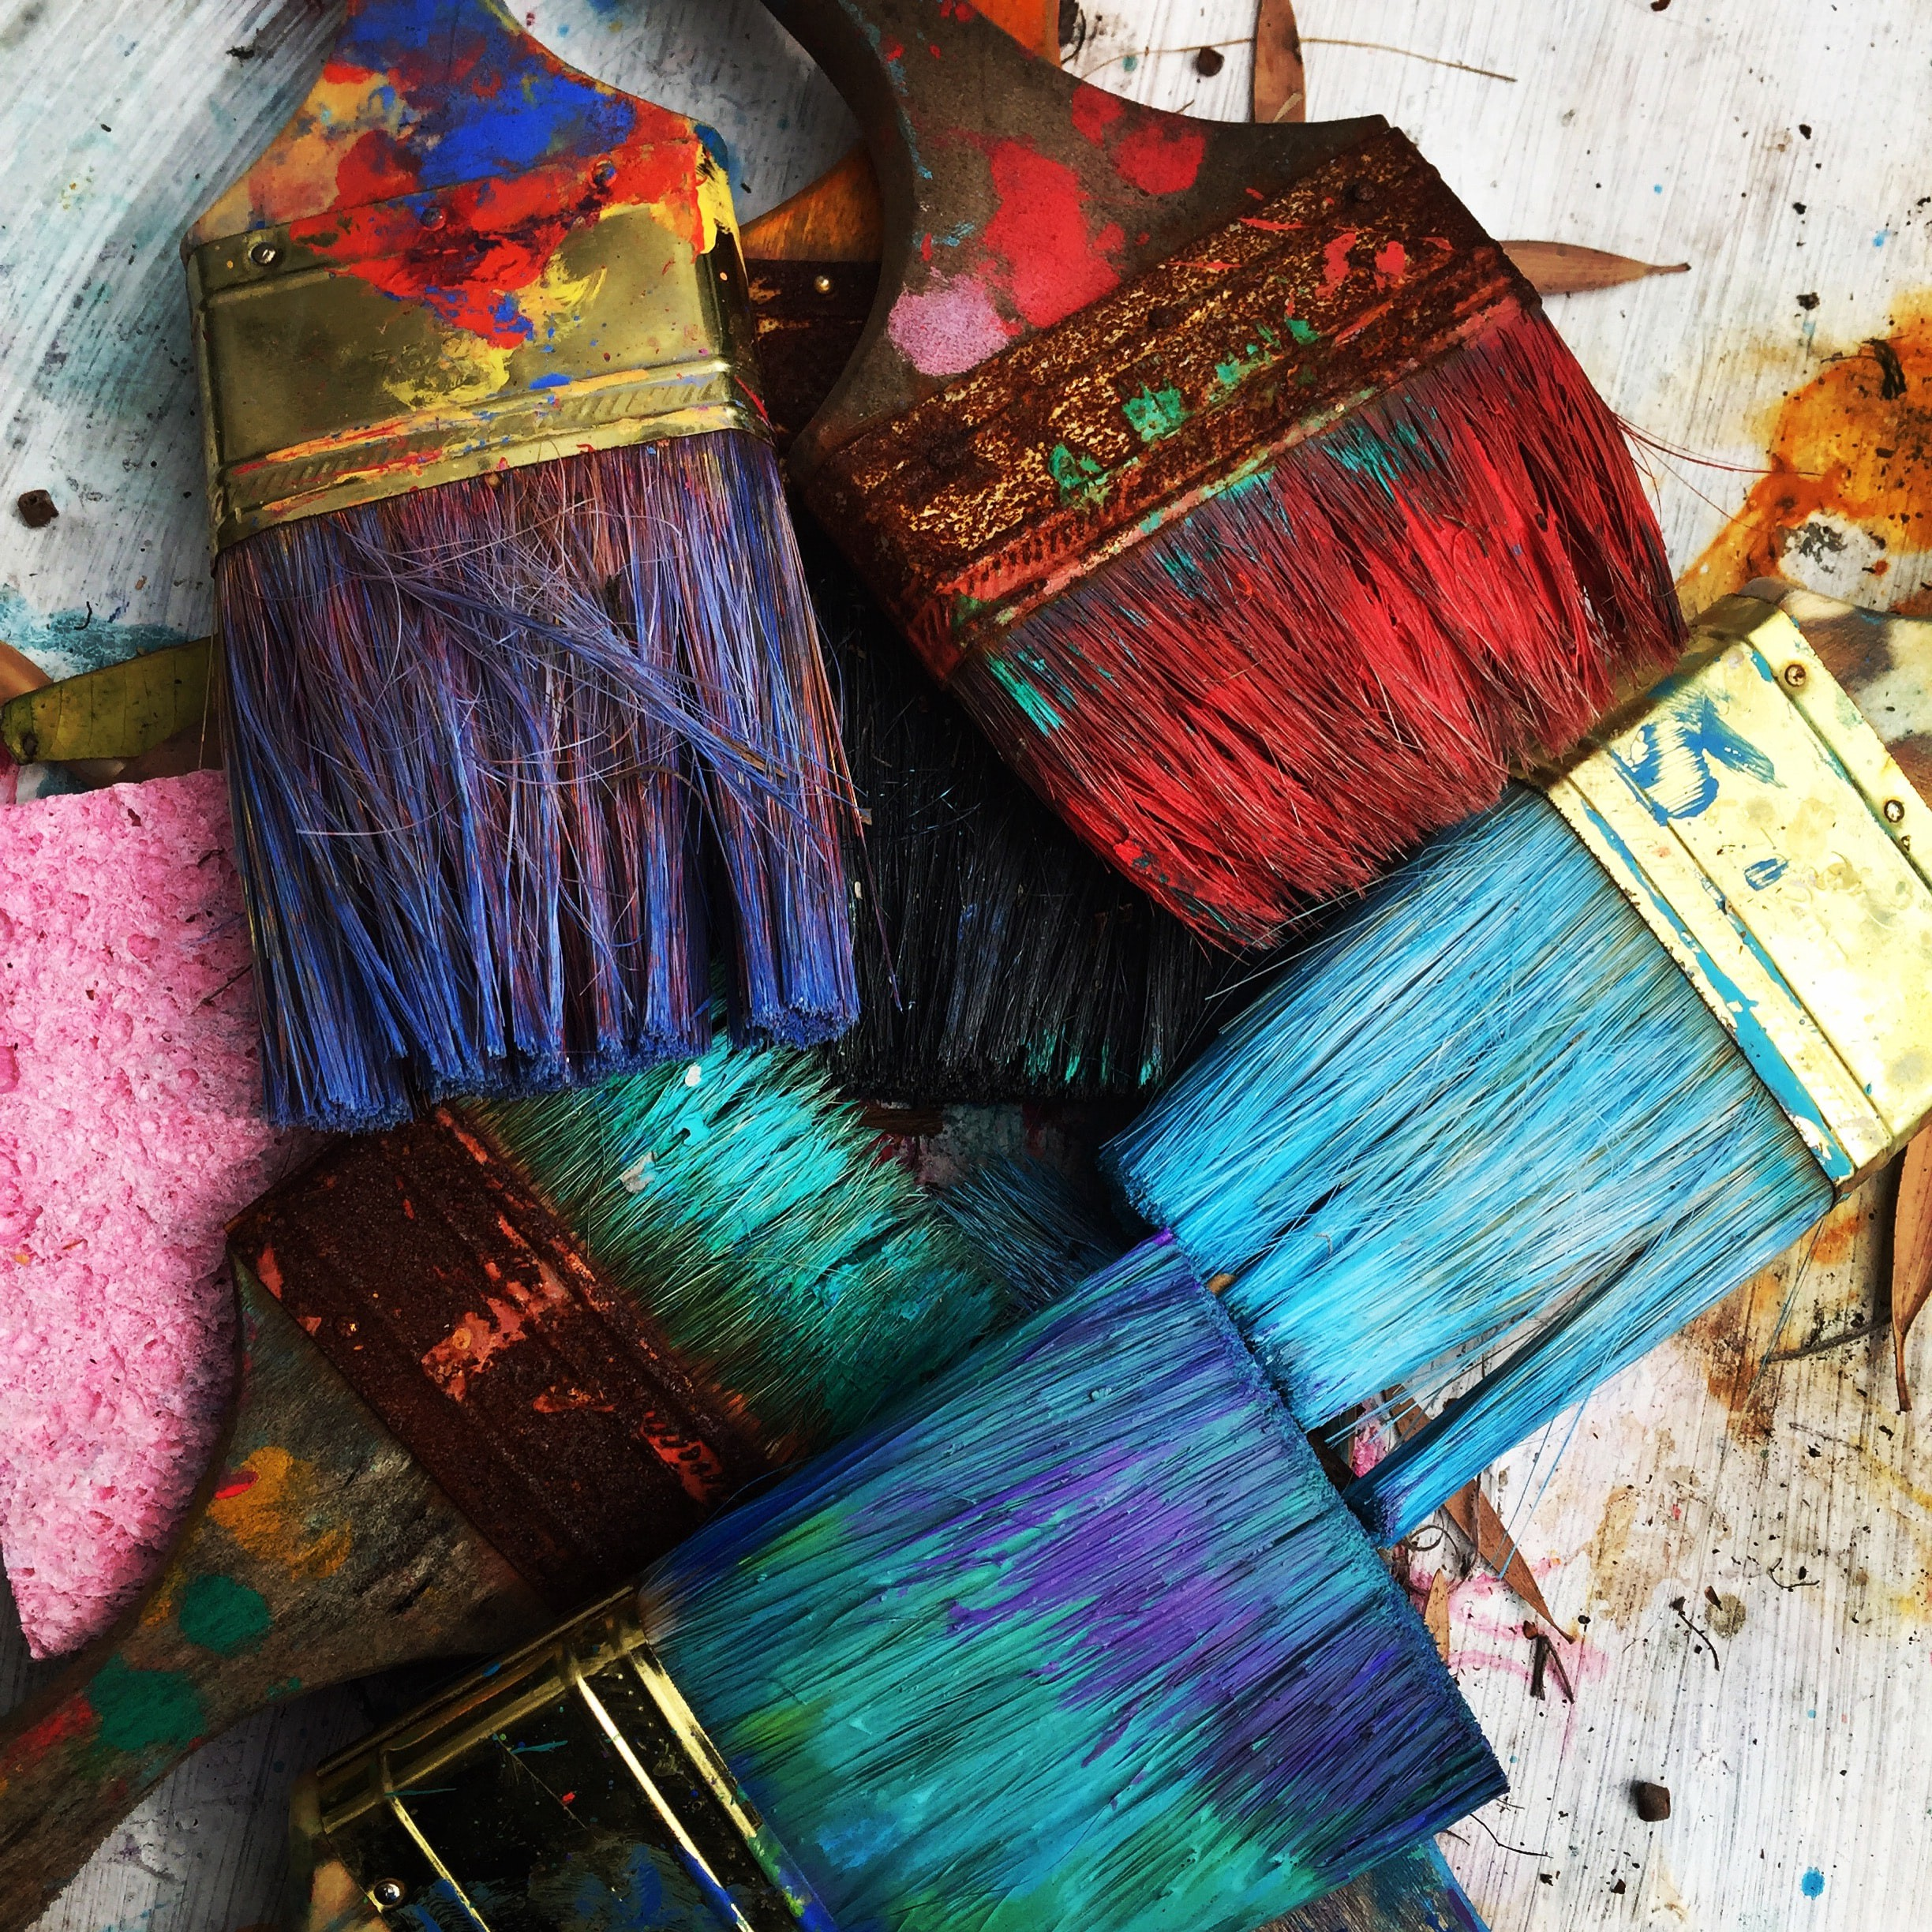 Paintbrushes covered in colorful paint in an artistic array